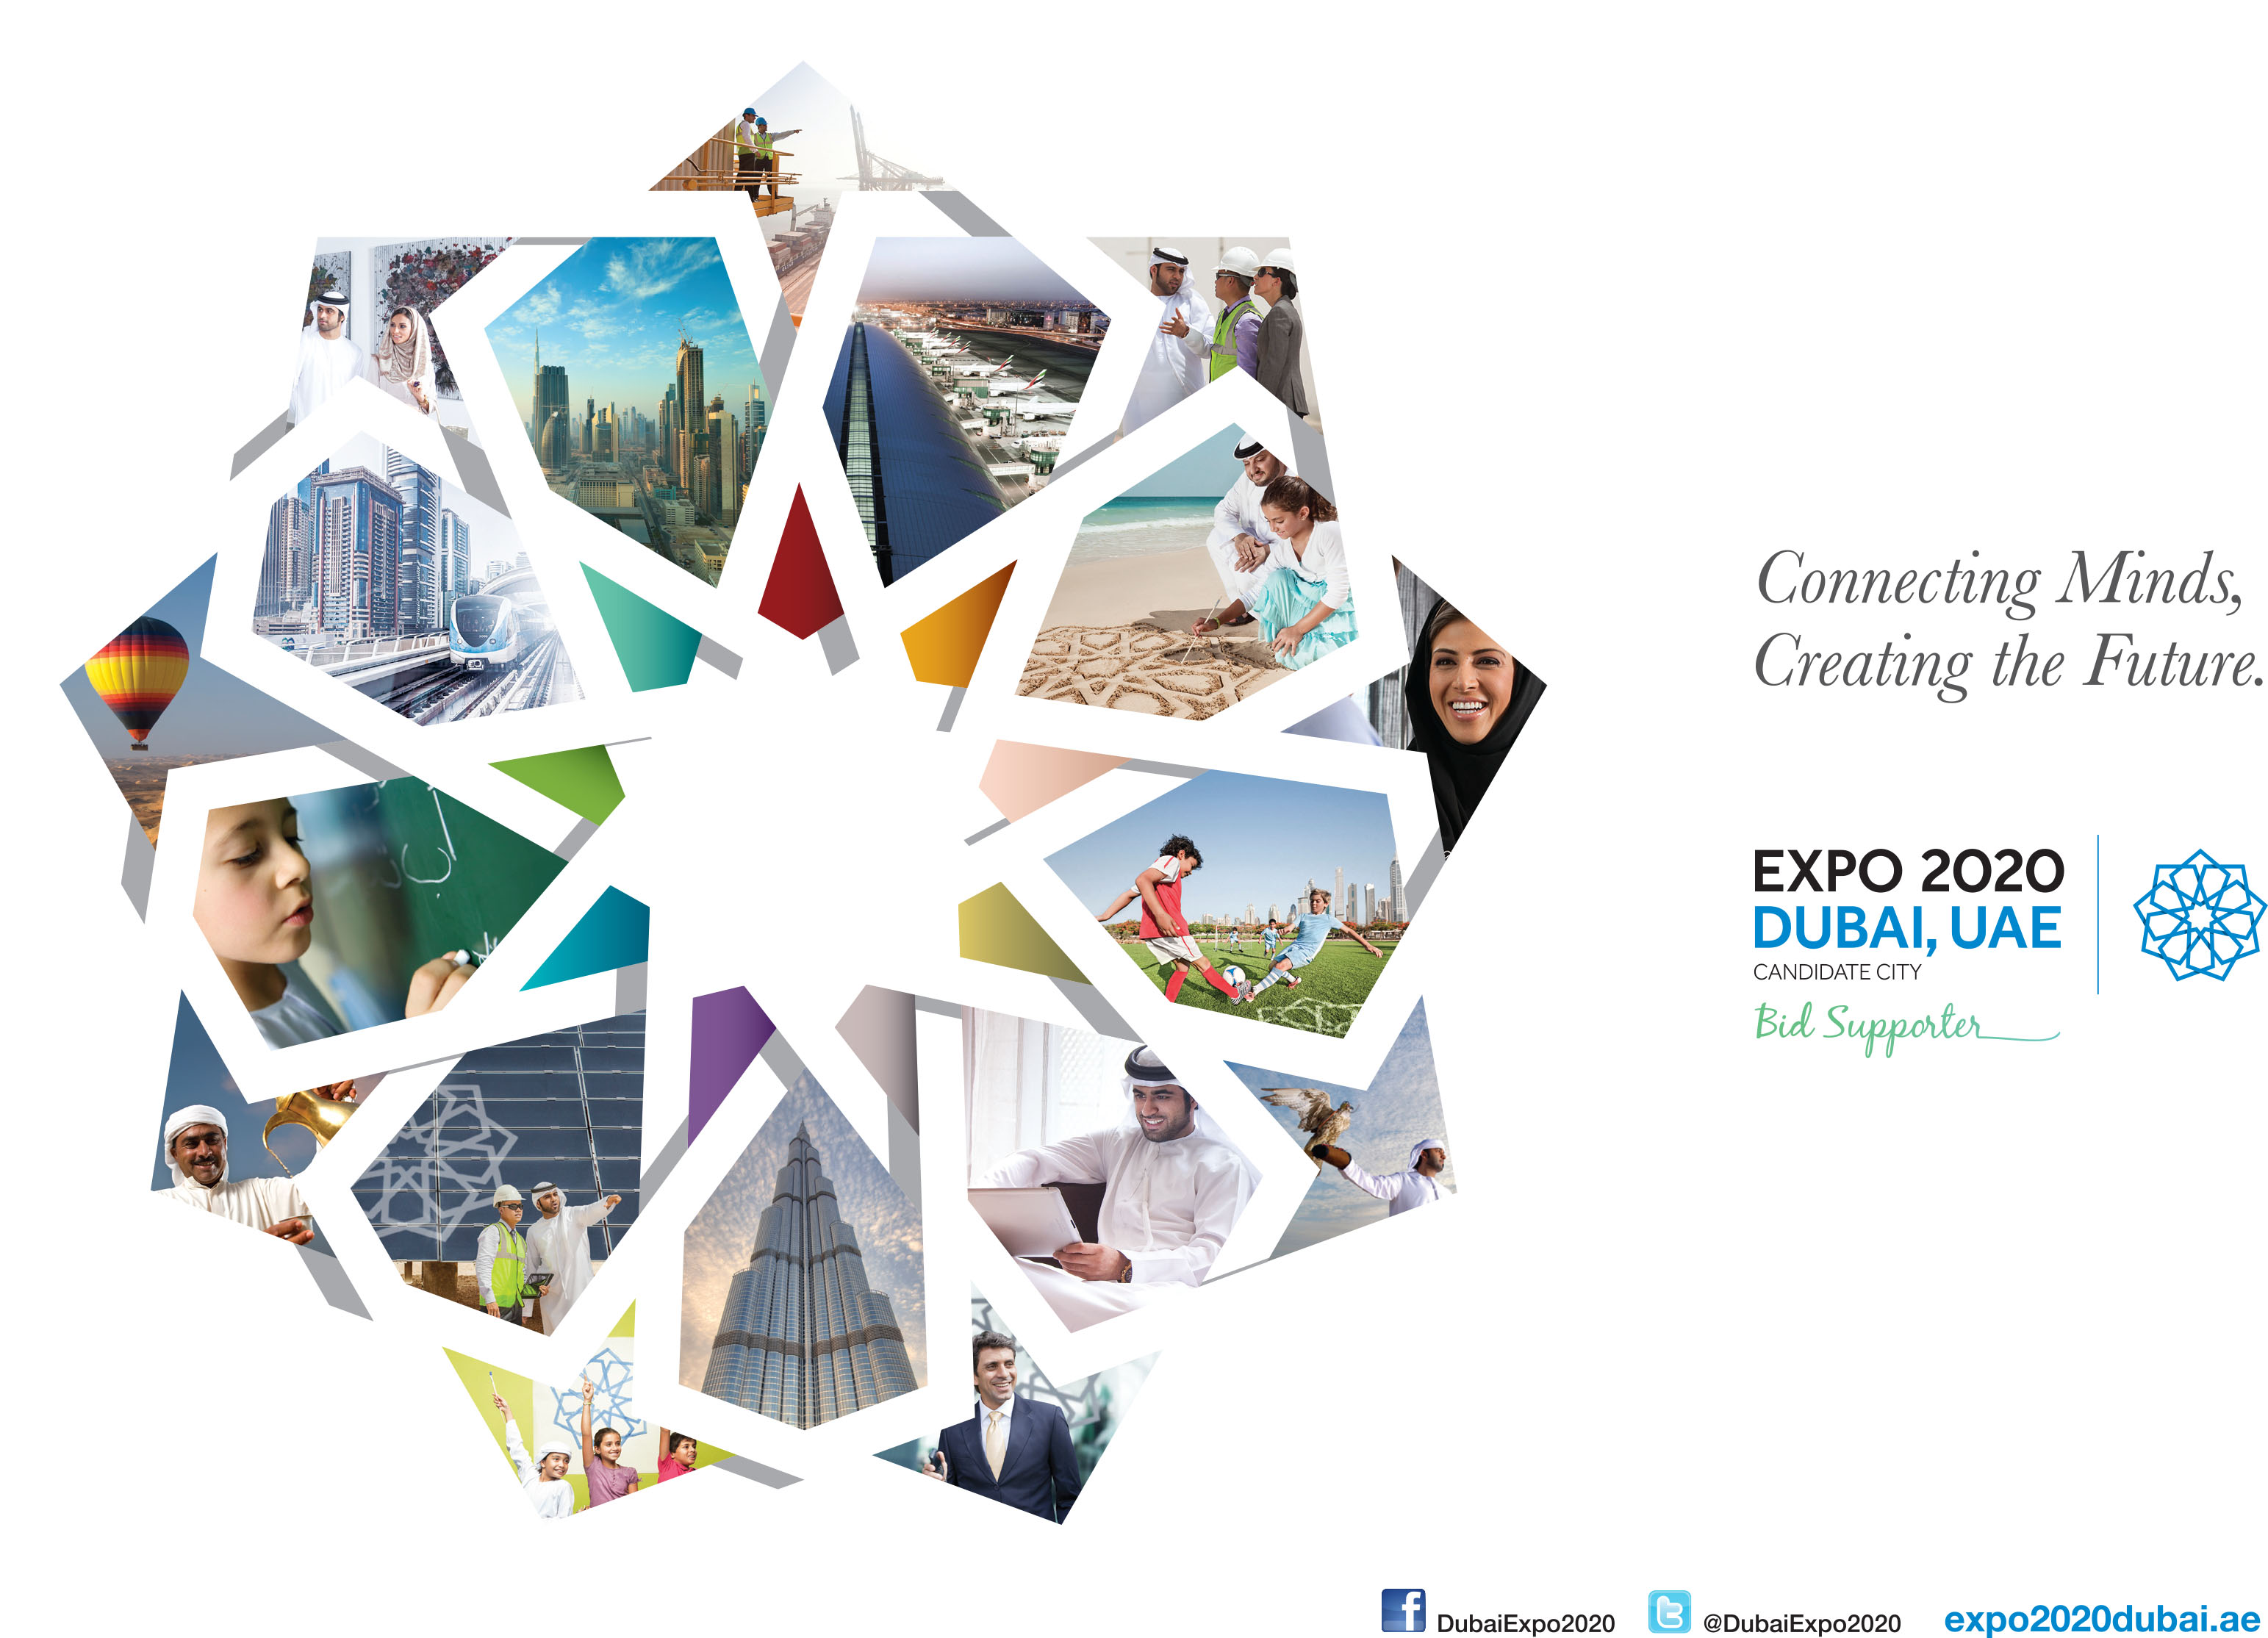 Time of Announcement of Dubai Expo 2020 – 8.30 PM UAE time